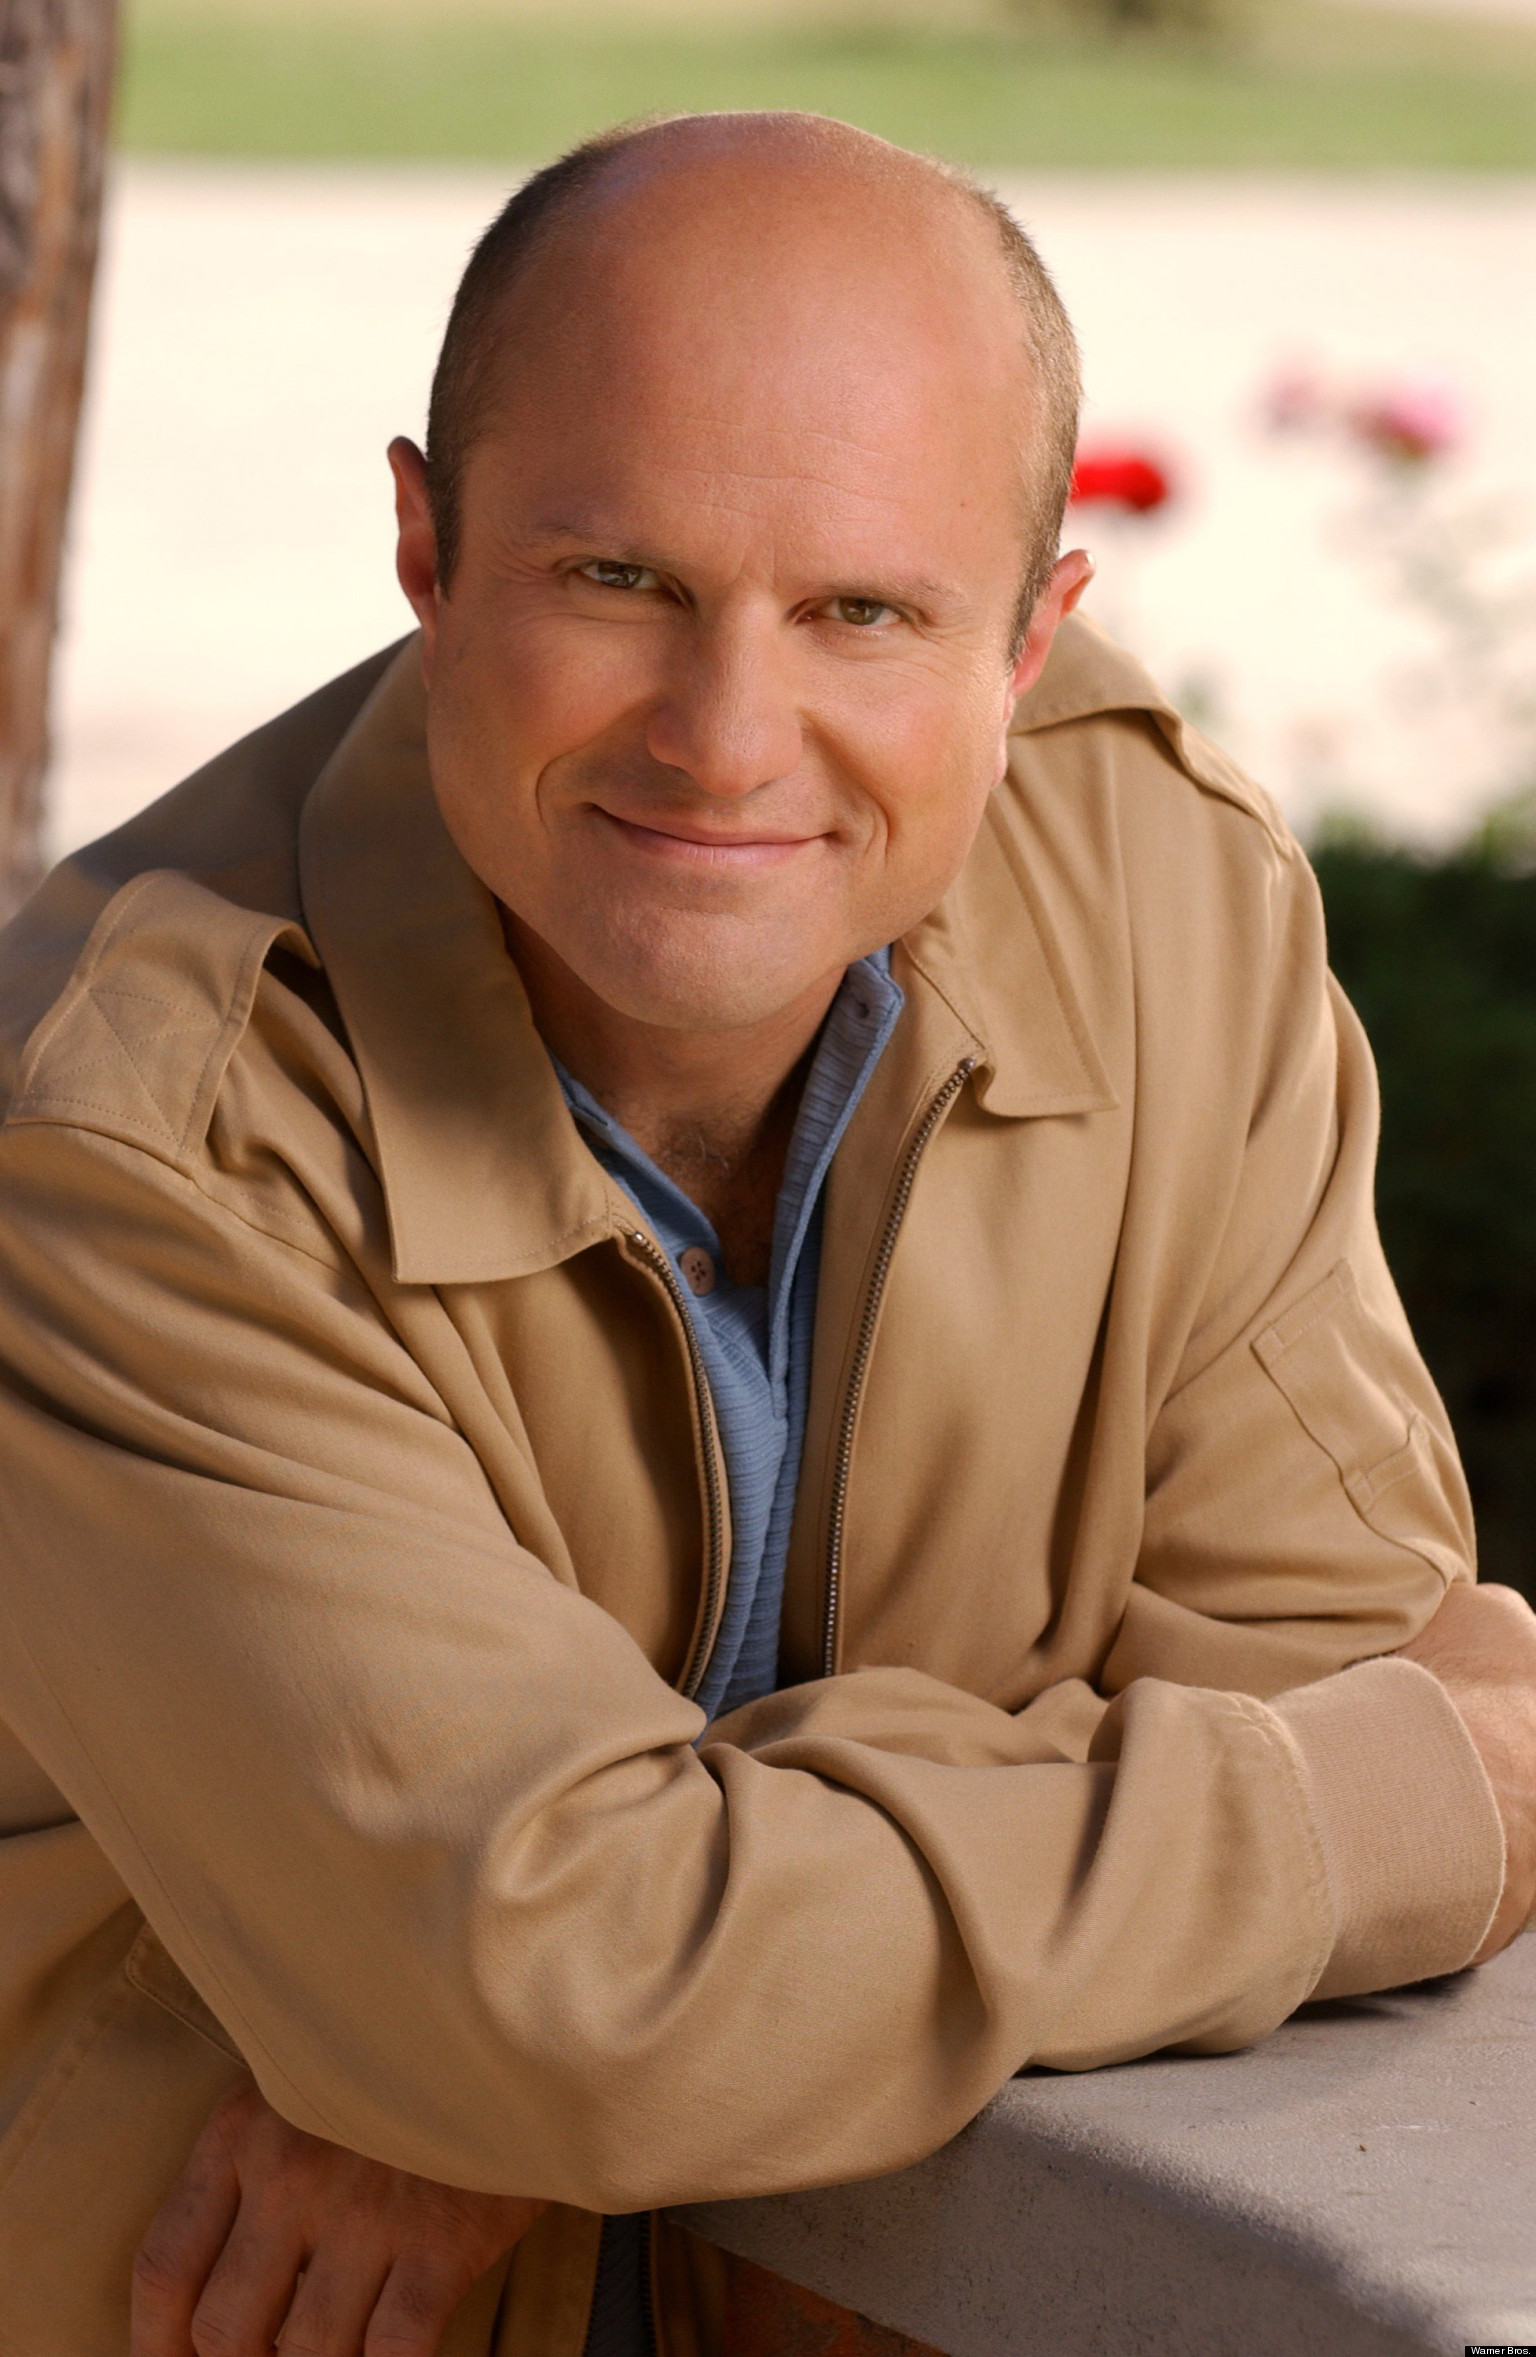 enrico colantoni wikipediaenrico colantoni wikipedia, enrico colantoni, enrico colantoni height, enrico colantoni imdb, enrico colantoni twitter, enrico colantoni flashpoint, enrico colantoni veronica mars, enrico colantoni net worth, enrico colantoni movies and tv shows, enrico colantoni wife, enrico colantoni leaving flashpoint, enrico colantoni married, enrico colantoni galaxy quest, enrico colantoni nancy snyder, enrico colantoni family, enrico colantoni synchronsprecher, enrico colantoni just shoot me, enrico colantoni bones, enrico colantoni married rosanna, enrico colantoni instagram